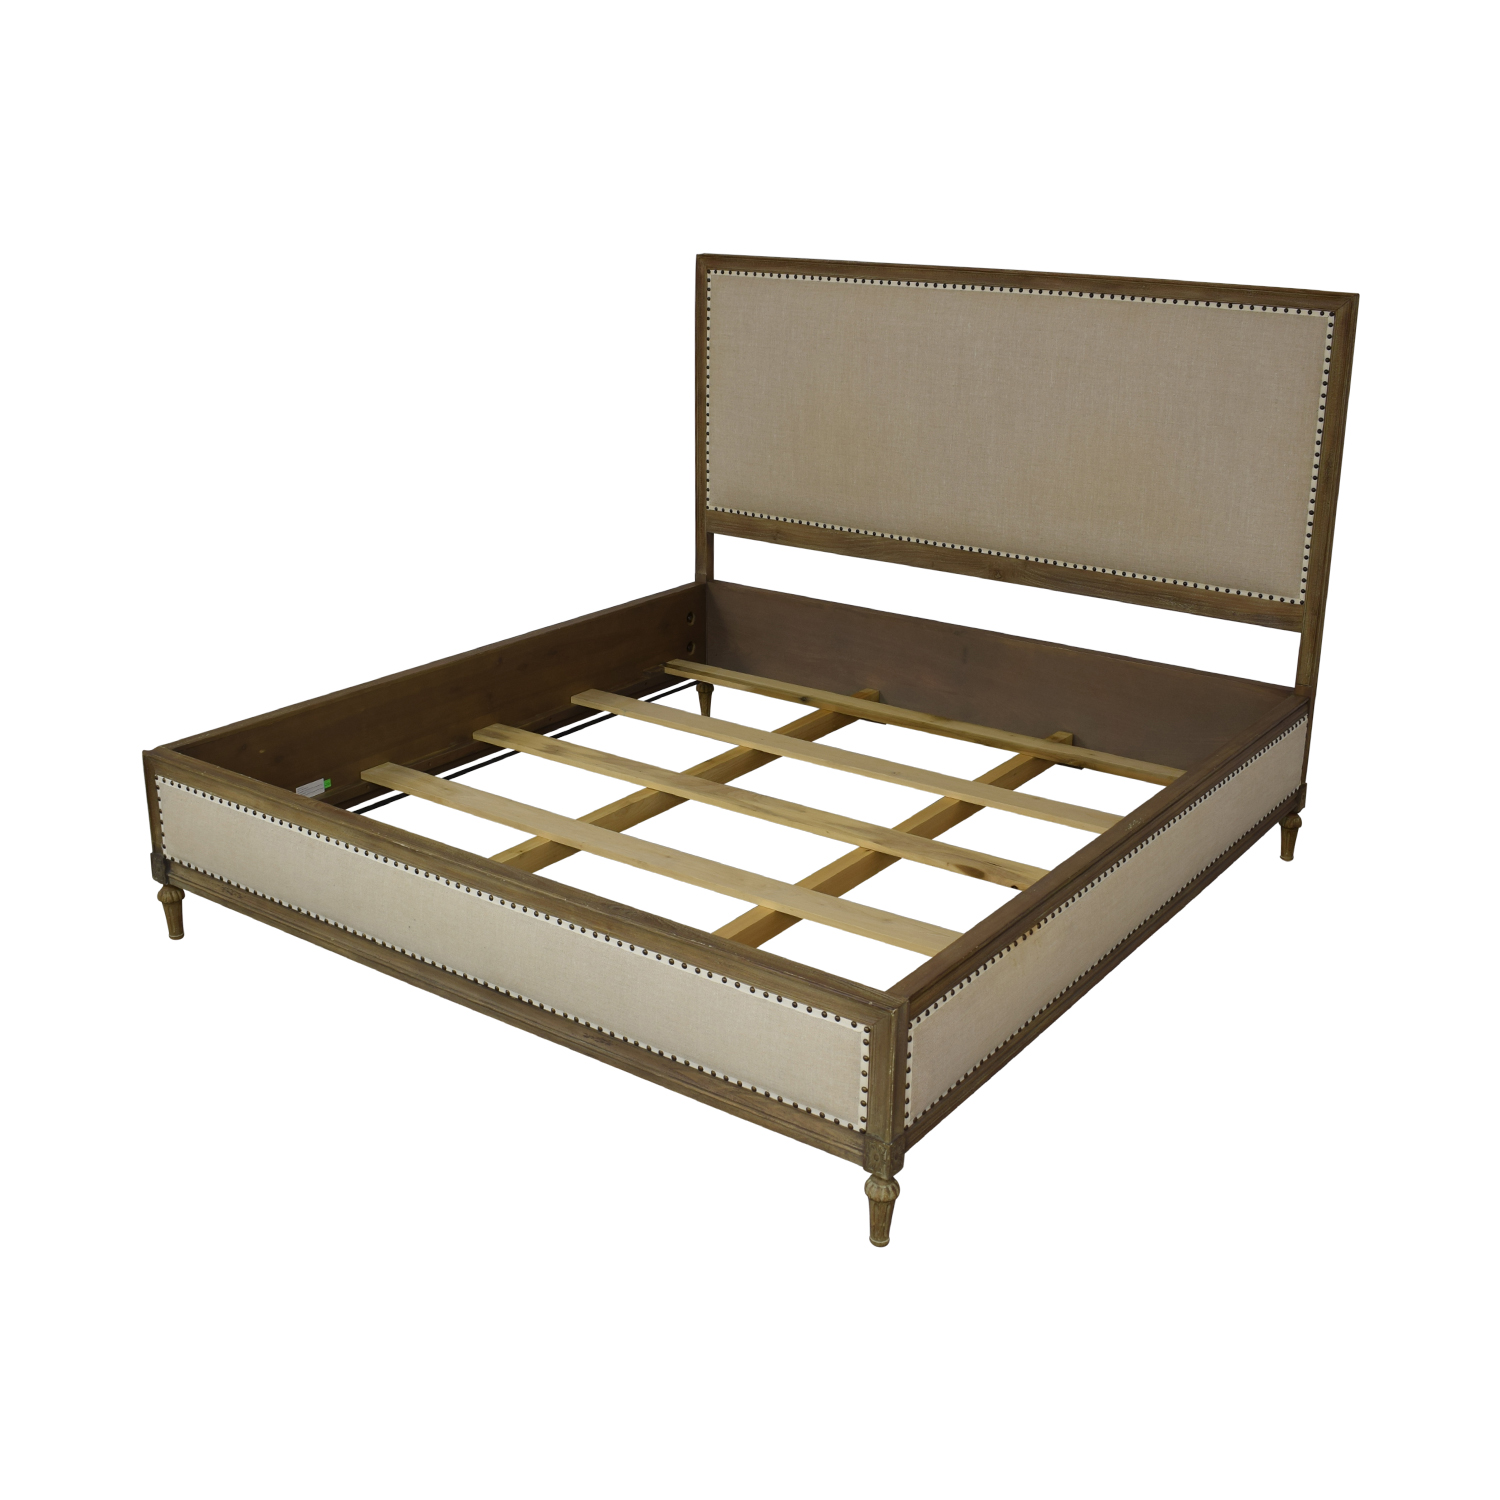 Restoration Hardware Restoration Hardware Maison Panel Fabric Bed Frame used